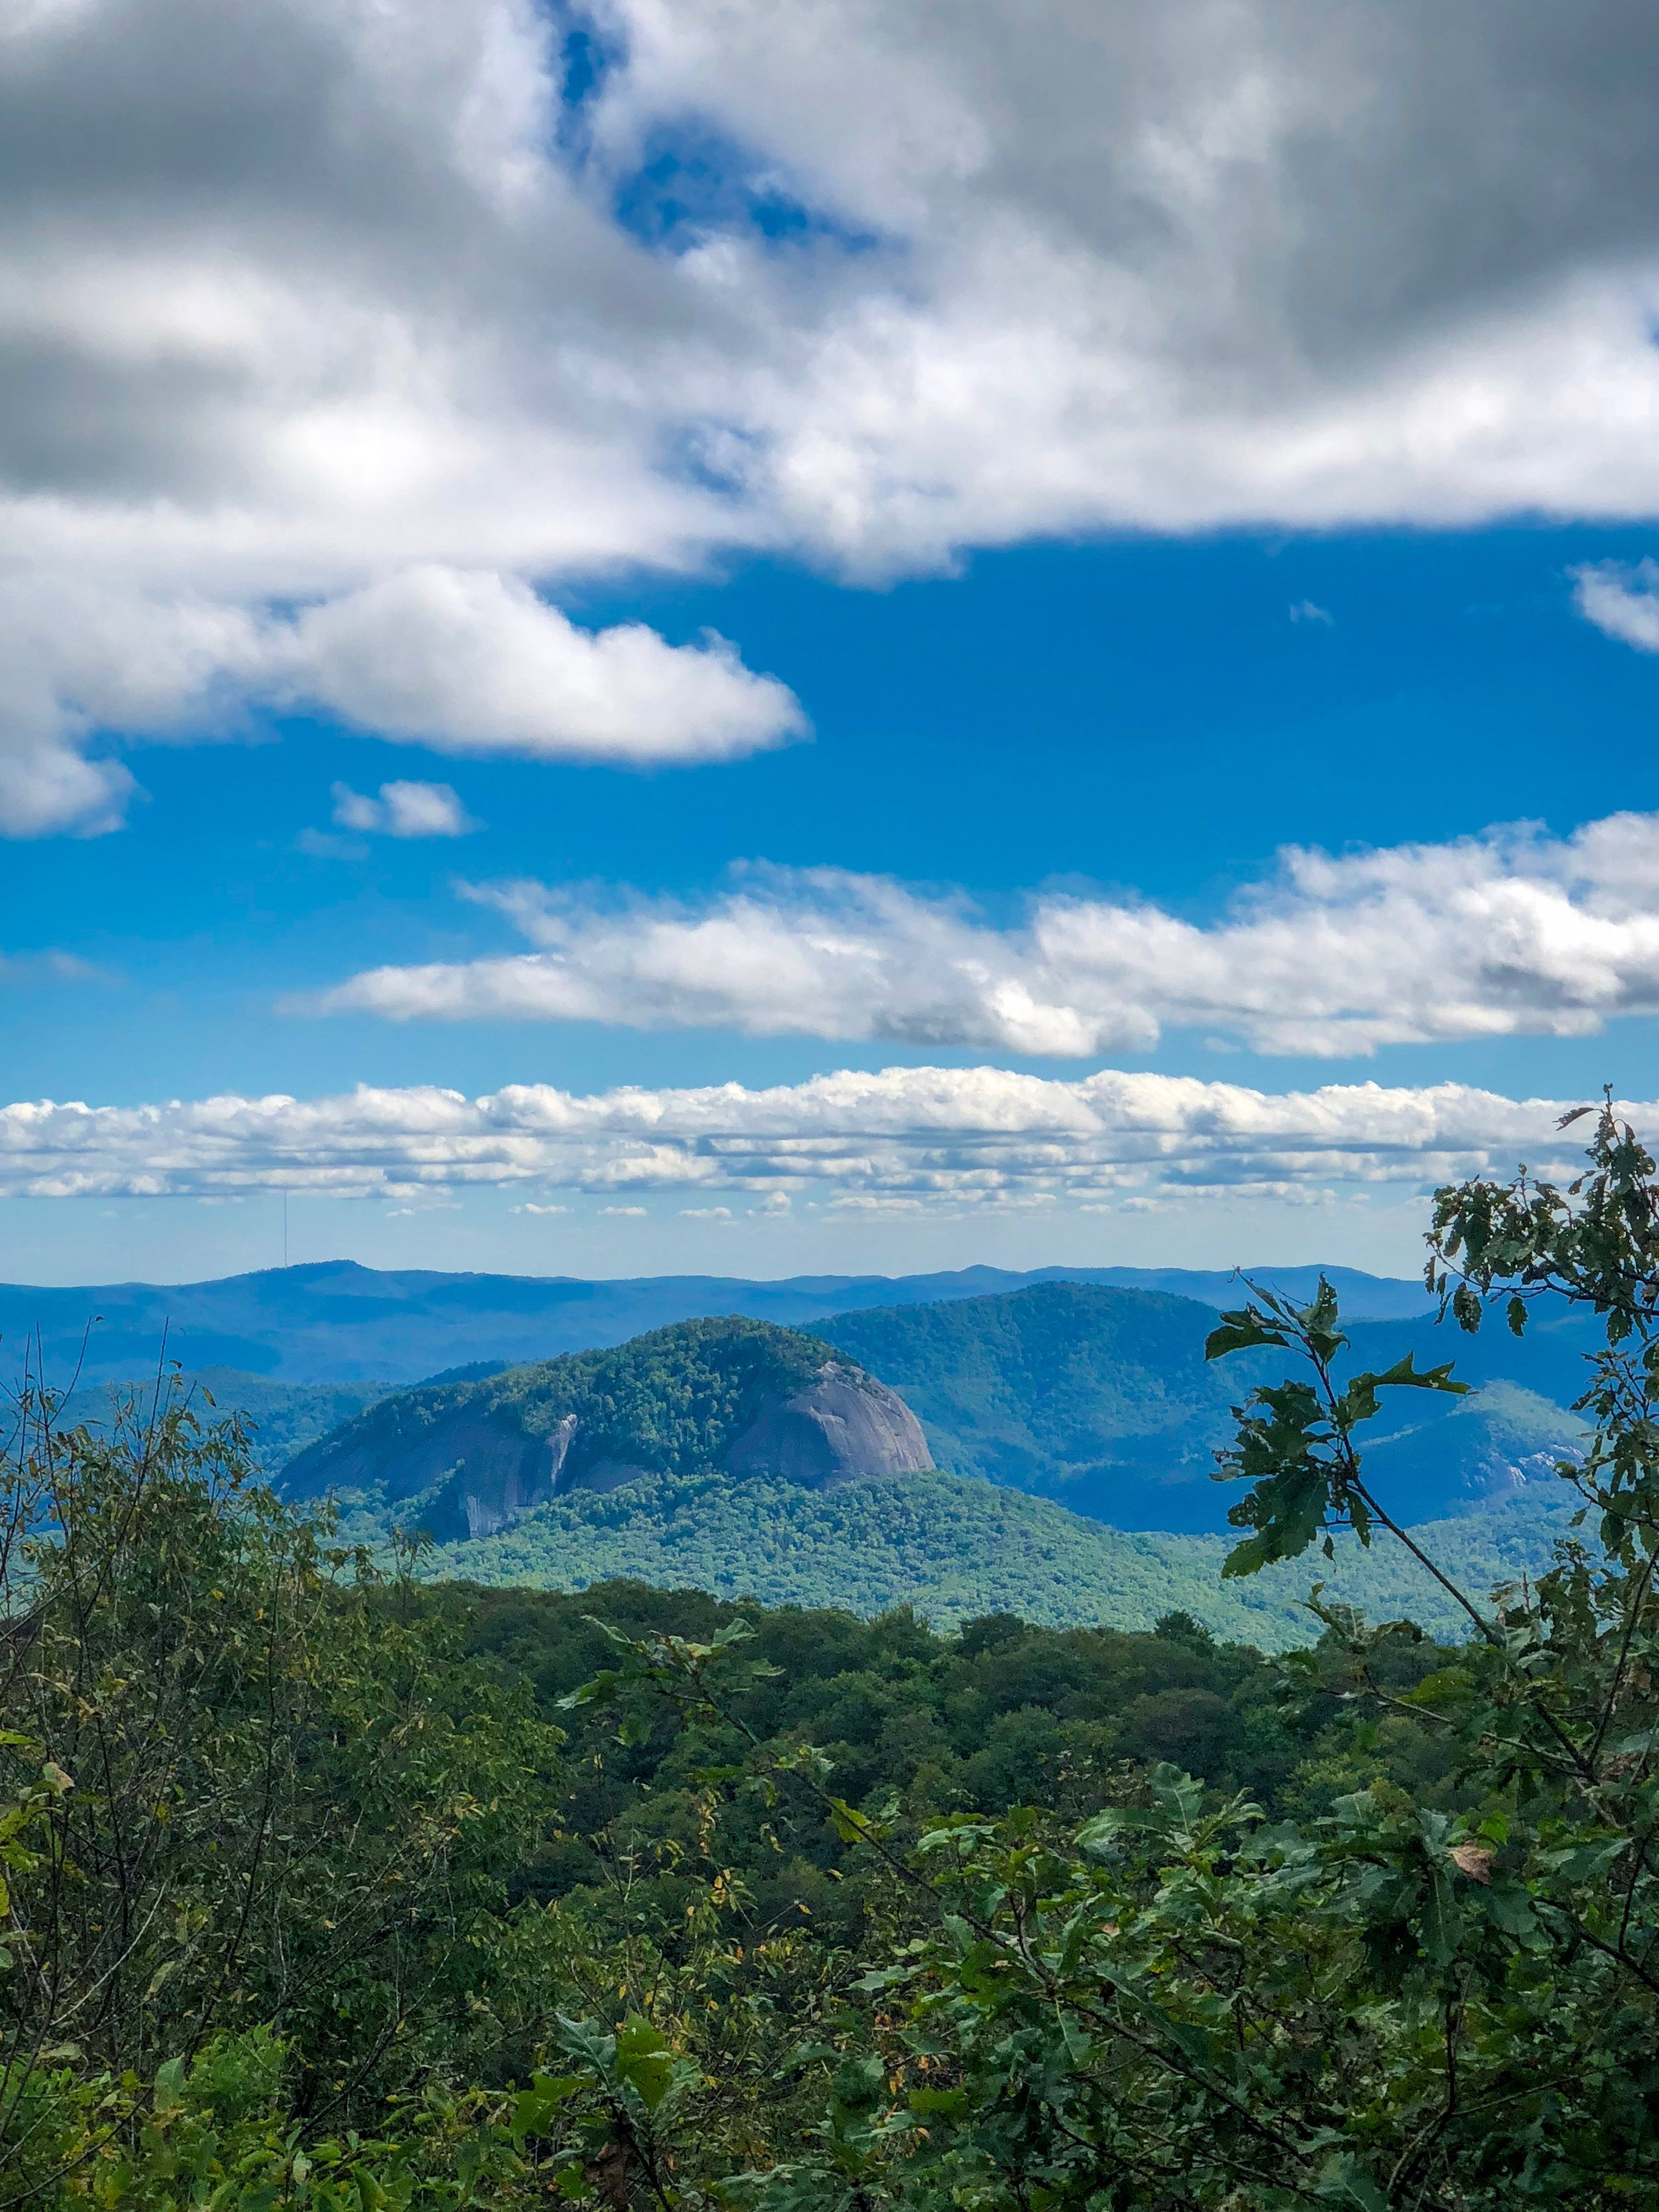 Looking Glass from the Blue Ridge Parkway